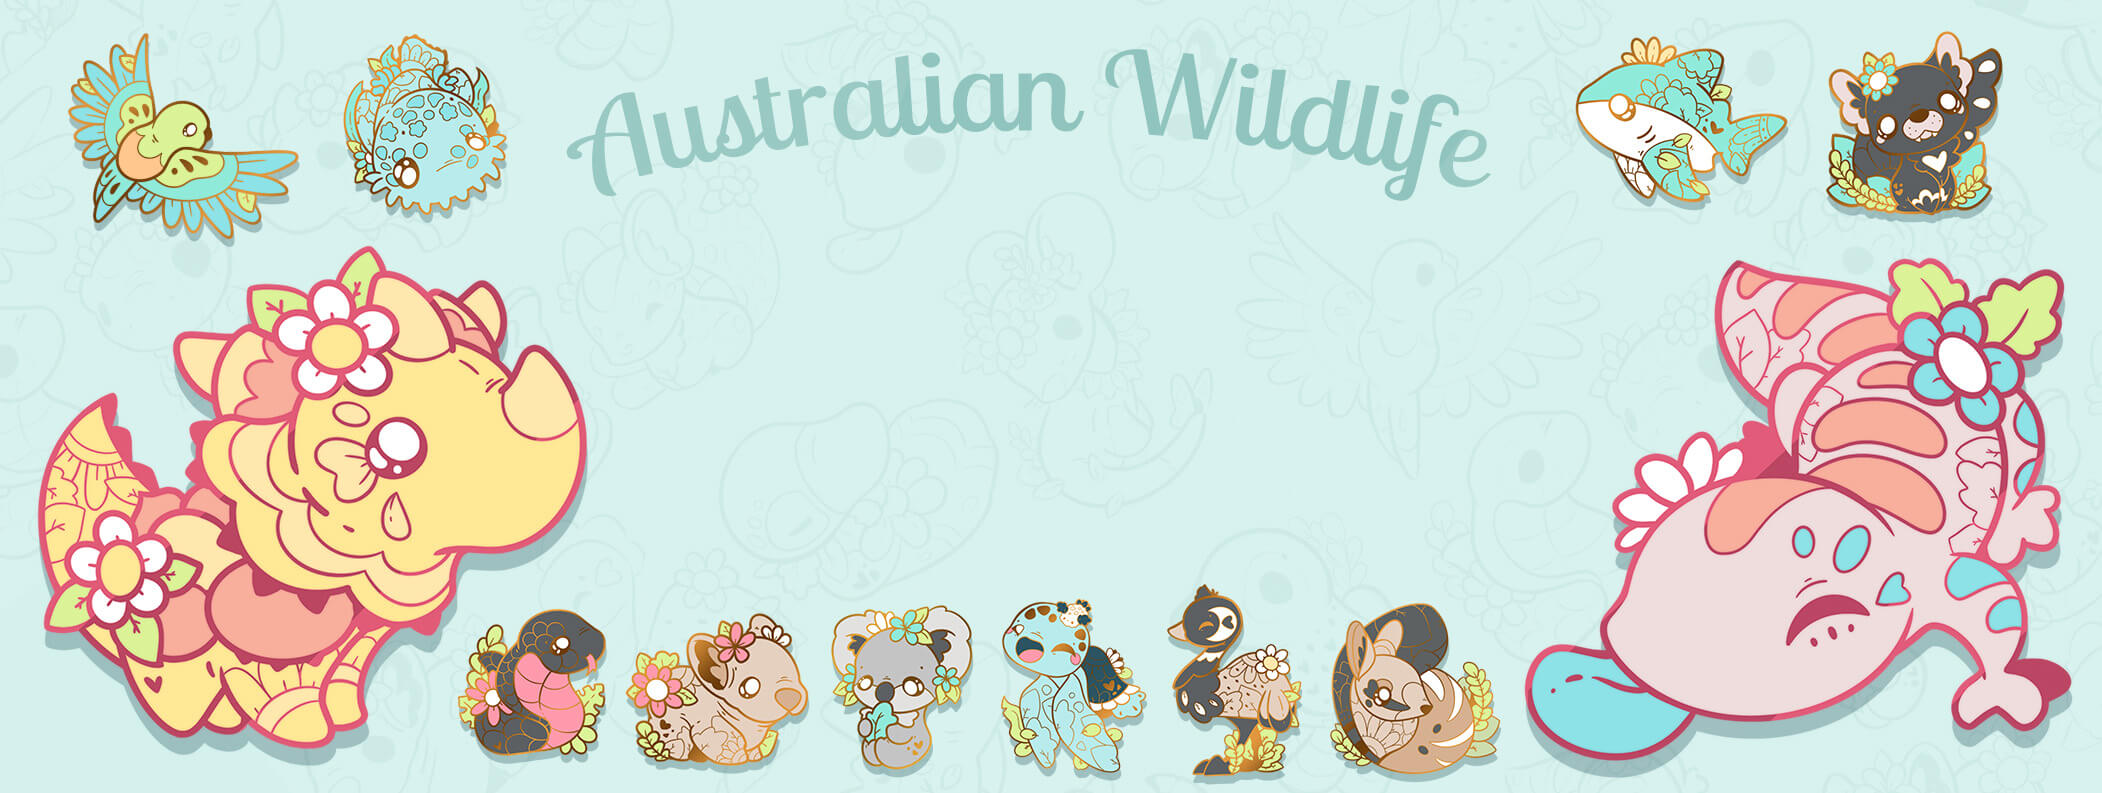 A cute preview of Evy Benita's Australian Wildlife charity enamel pin designs. This set features an orange-bellied parrot, a wobbegong shark, a thorny devil, a red-bellied black snake, a numbat, a tasmanian devil, a leatherback sea turtle, a bull shark, a numbat, an emu, and more!